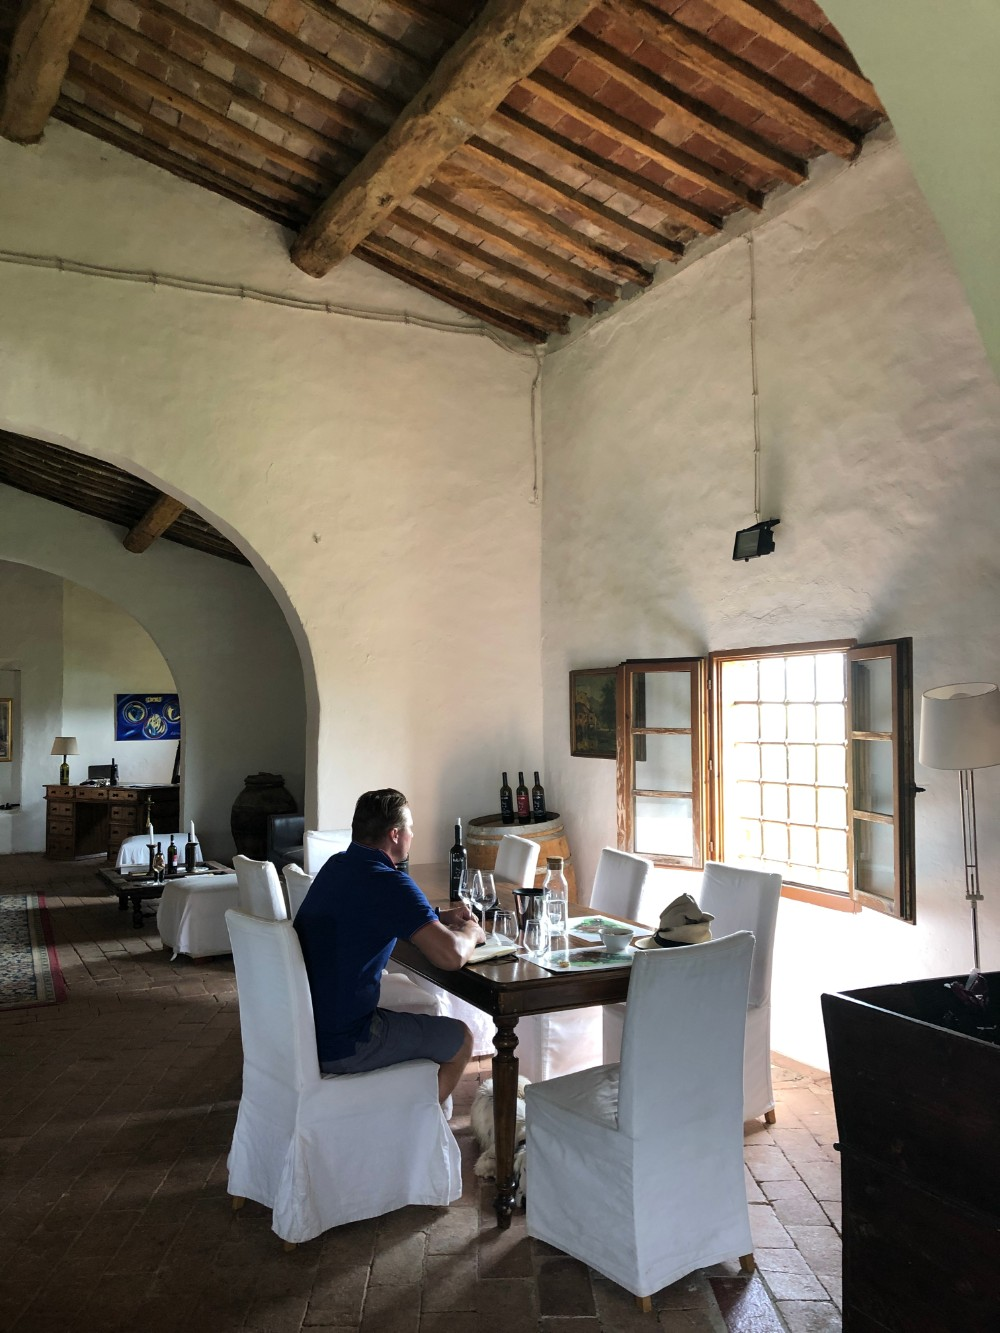 Contemplating the wines in the wine tasting room at castello tricerchi